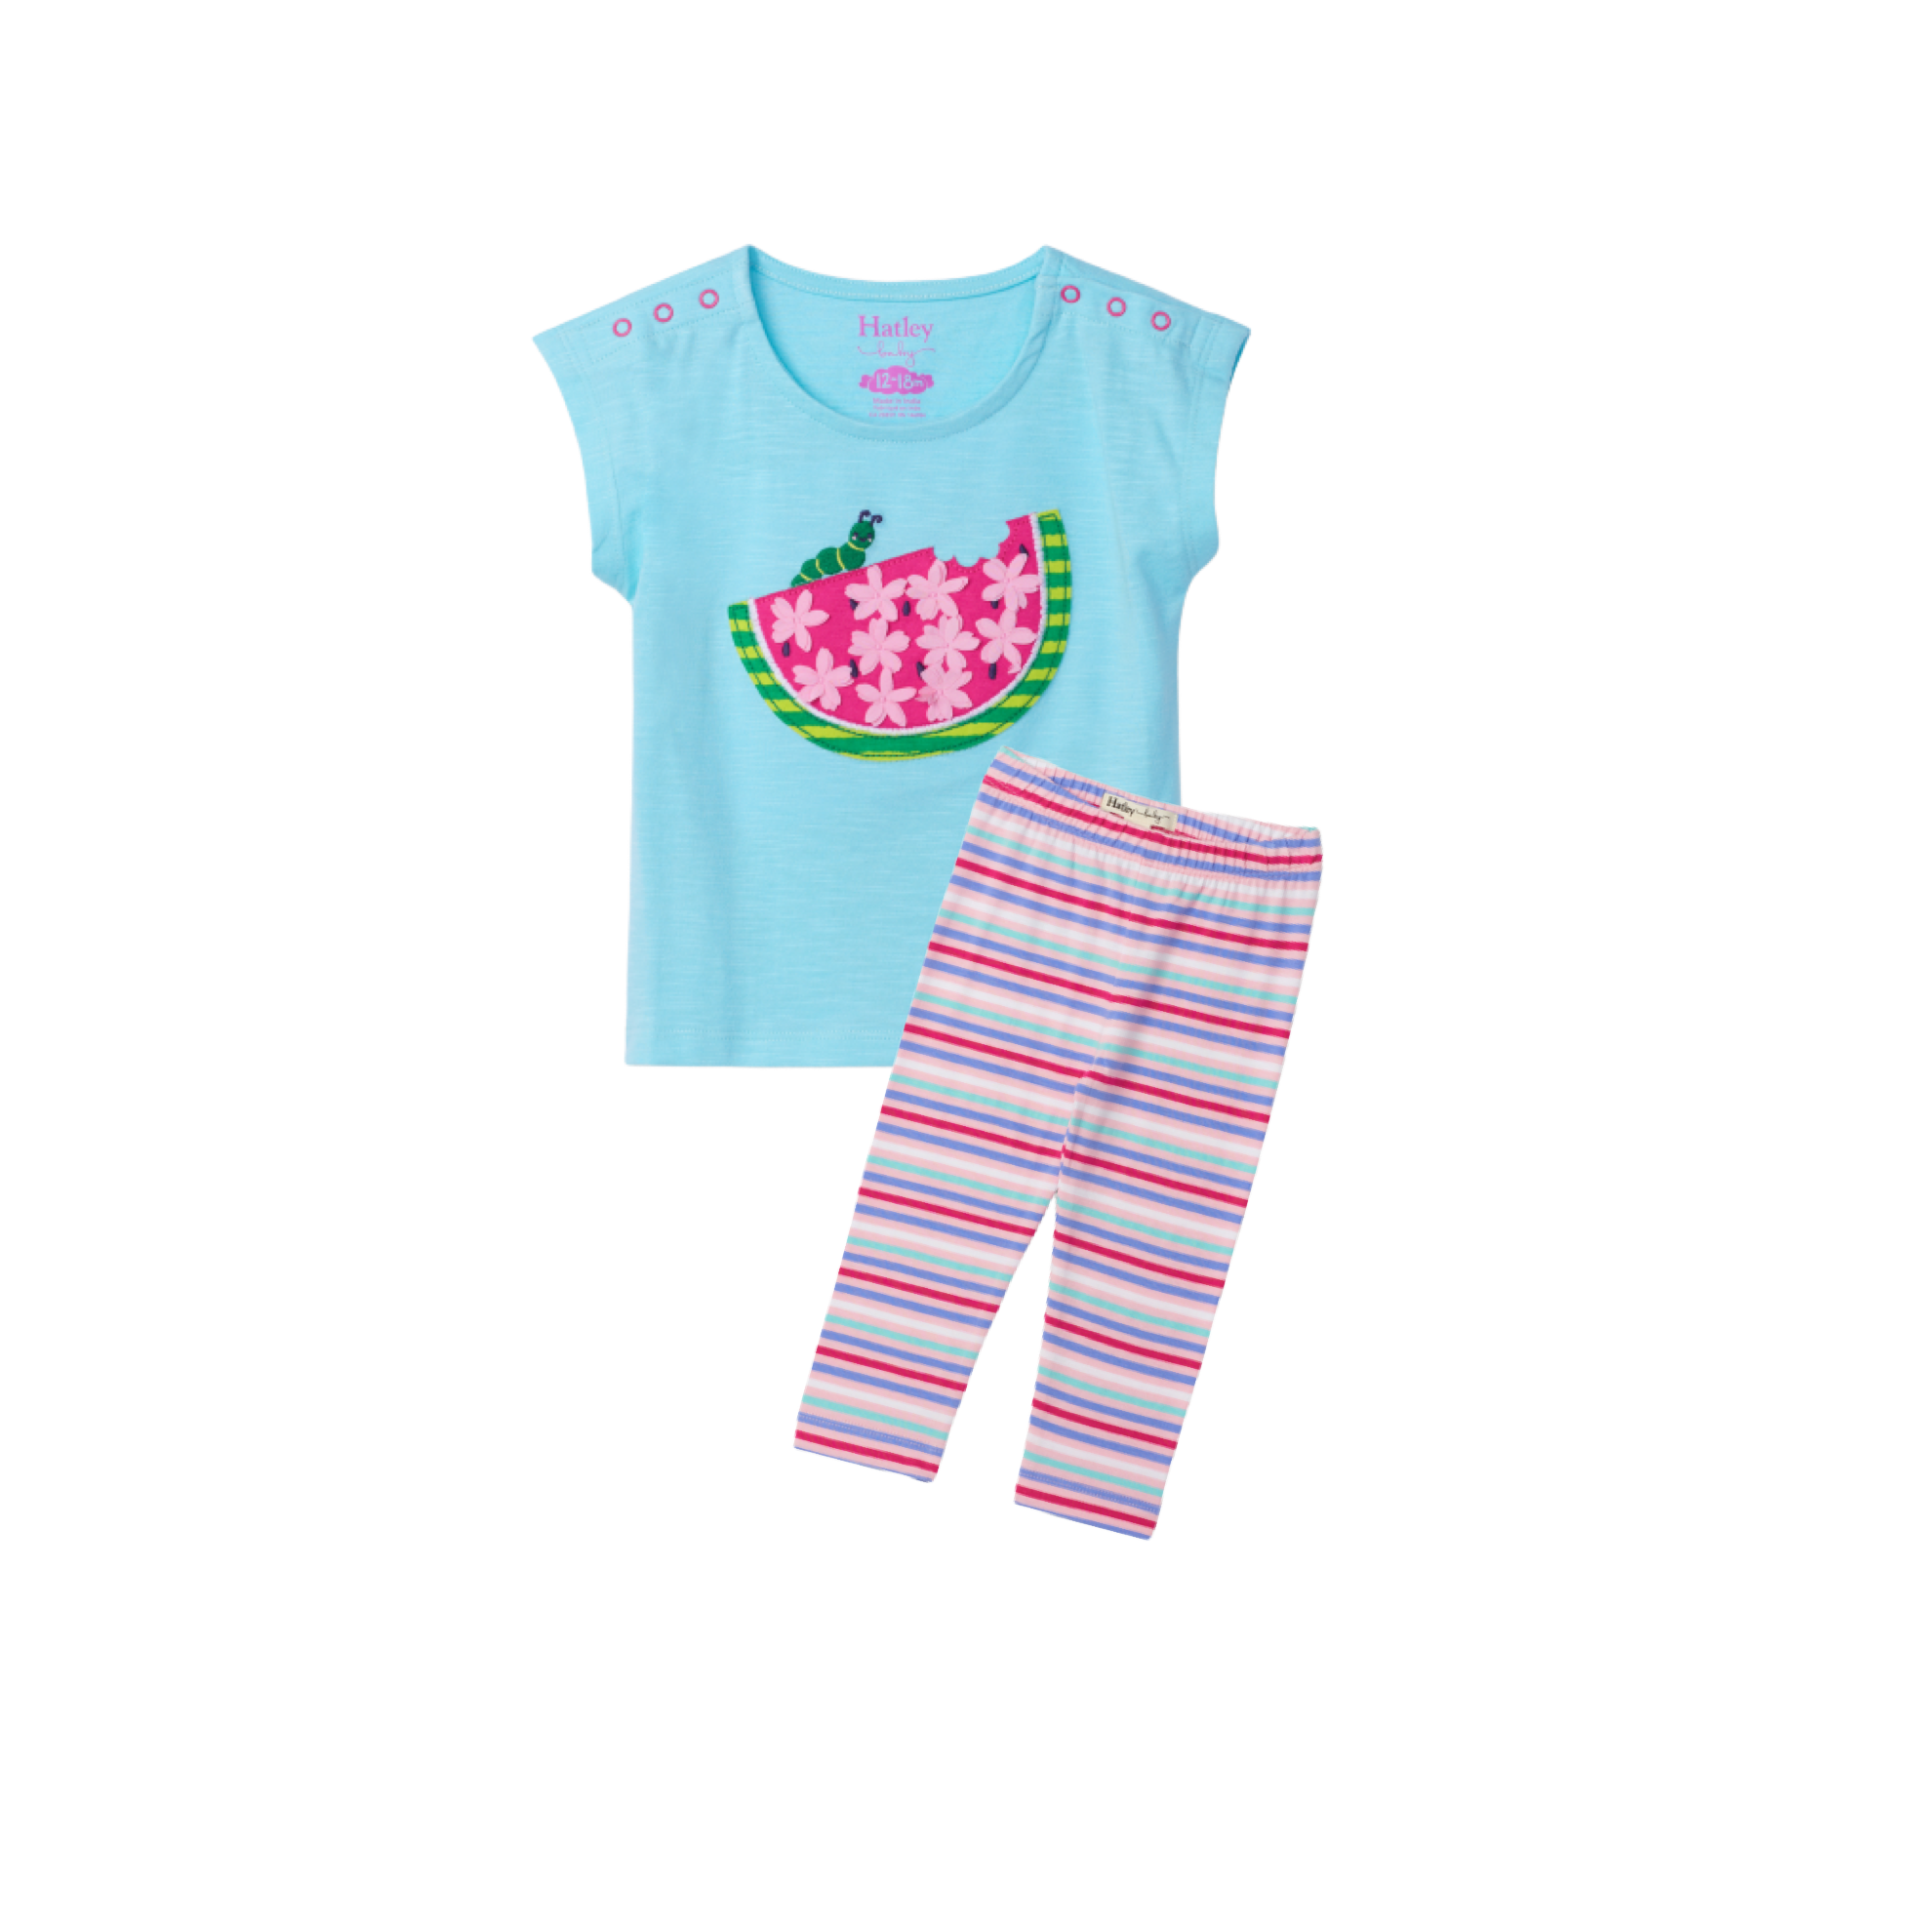 Watermelon Slice Baby Tee + Legging Set